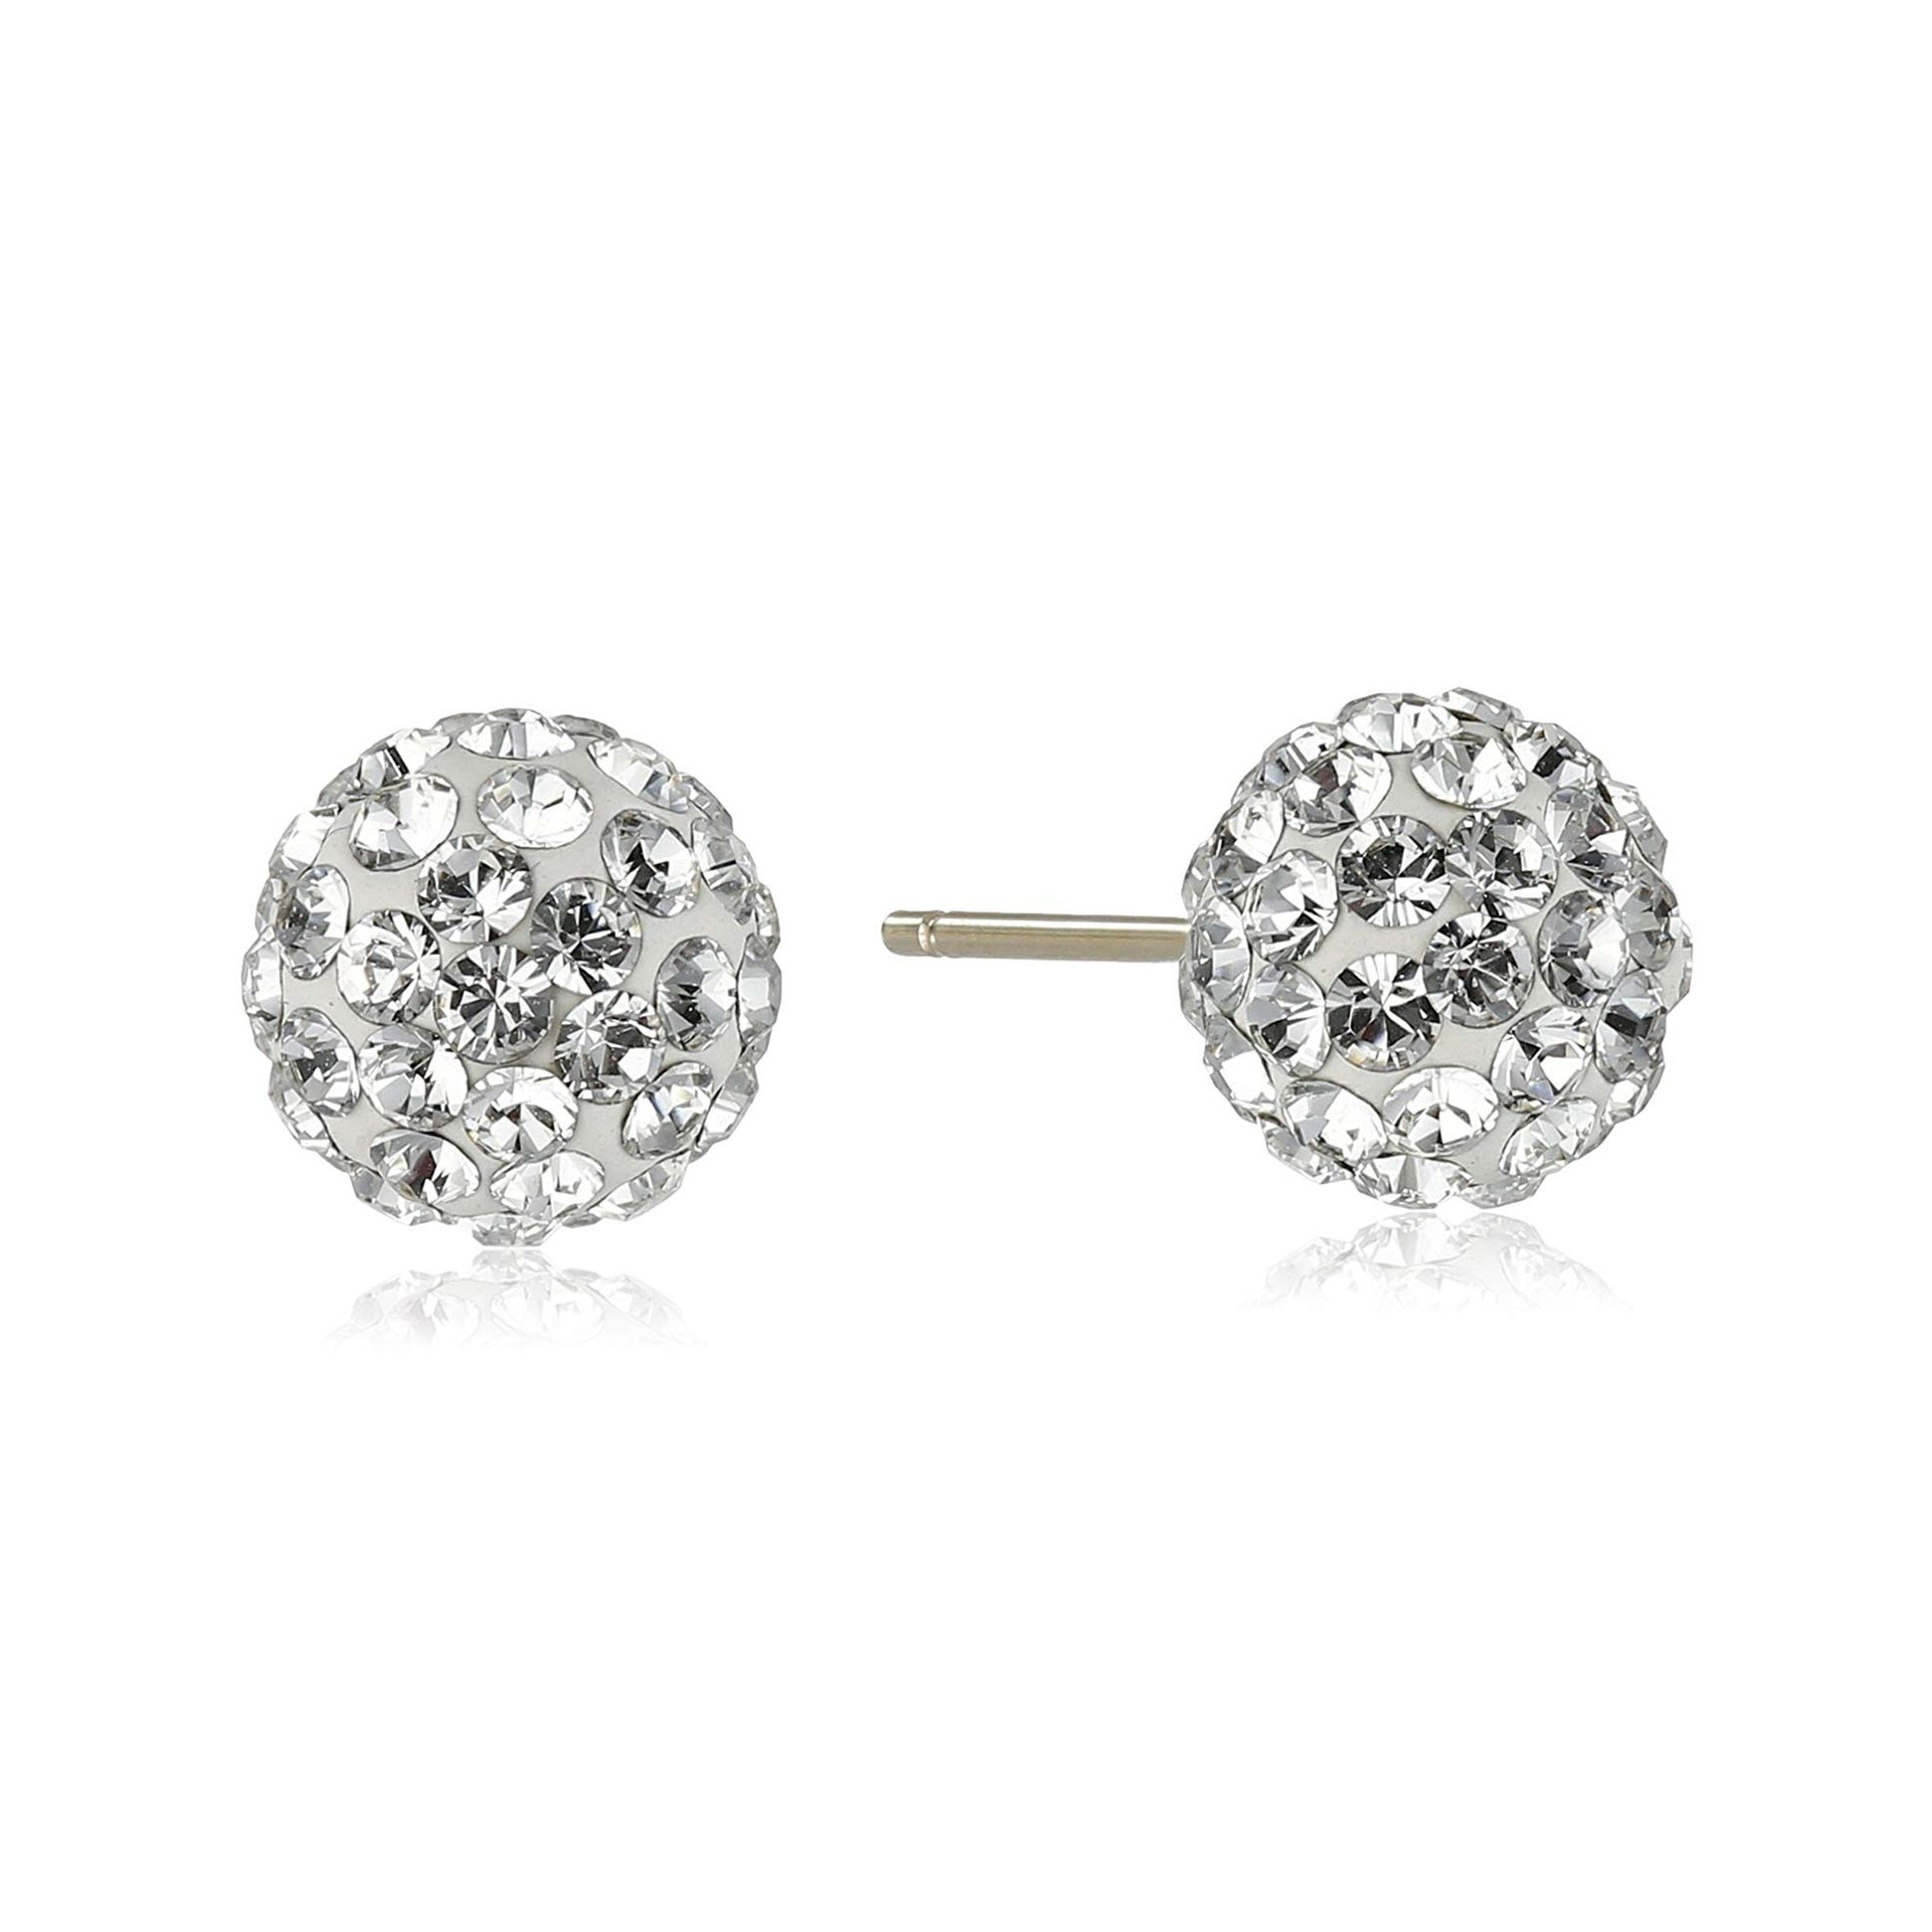 Crystaluxe Ball Stud Earrings With Swarovski Crystals In 14k Gold